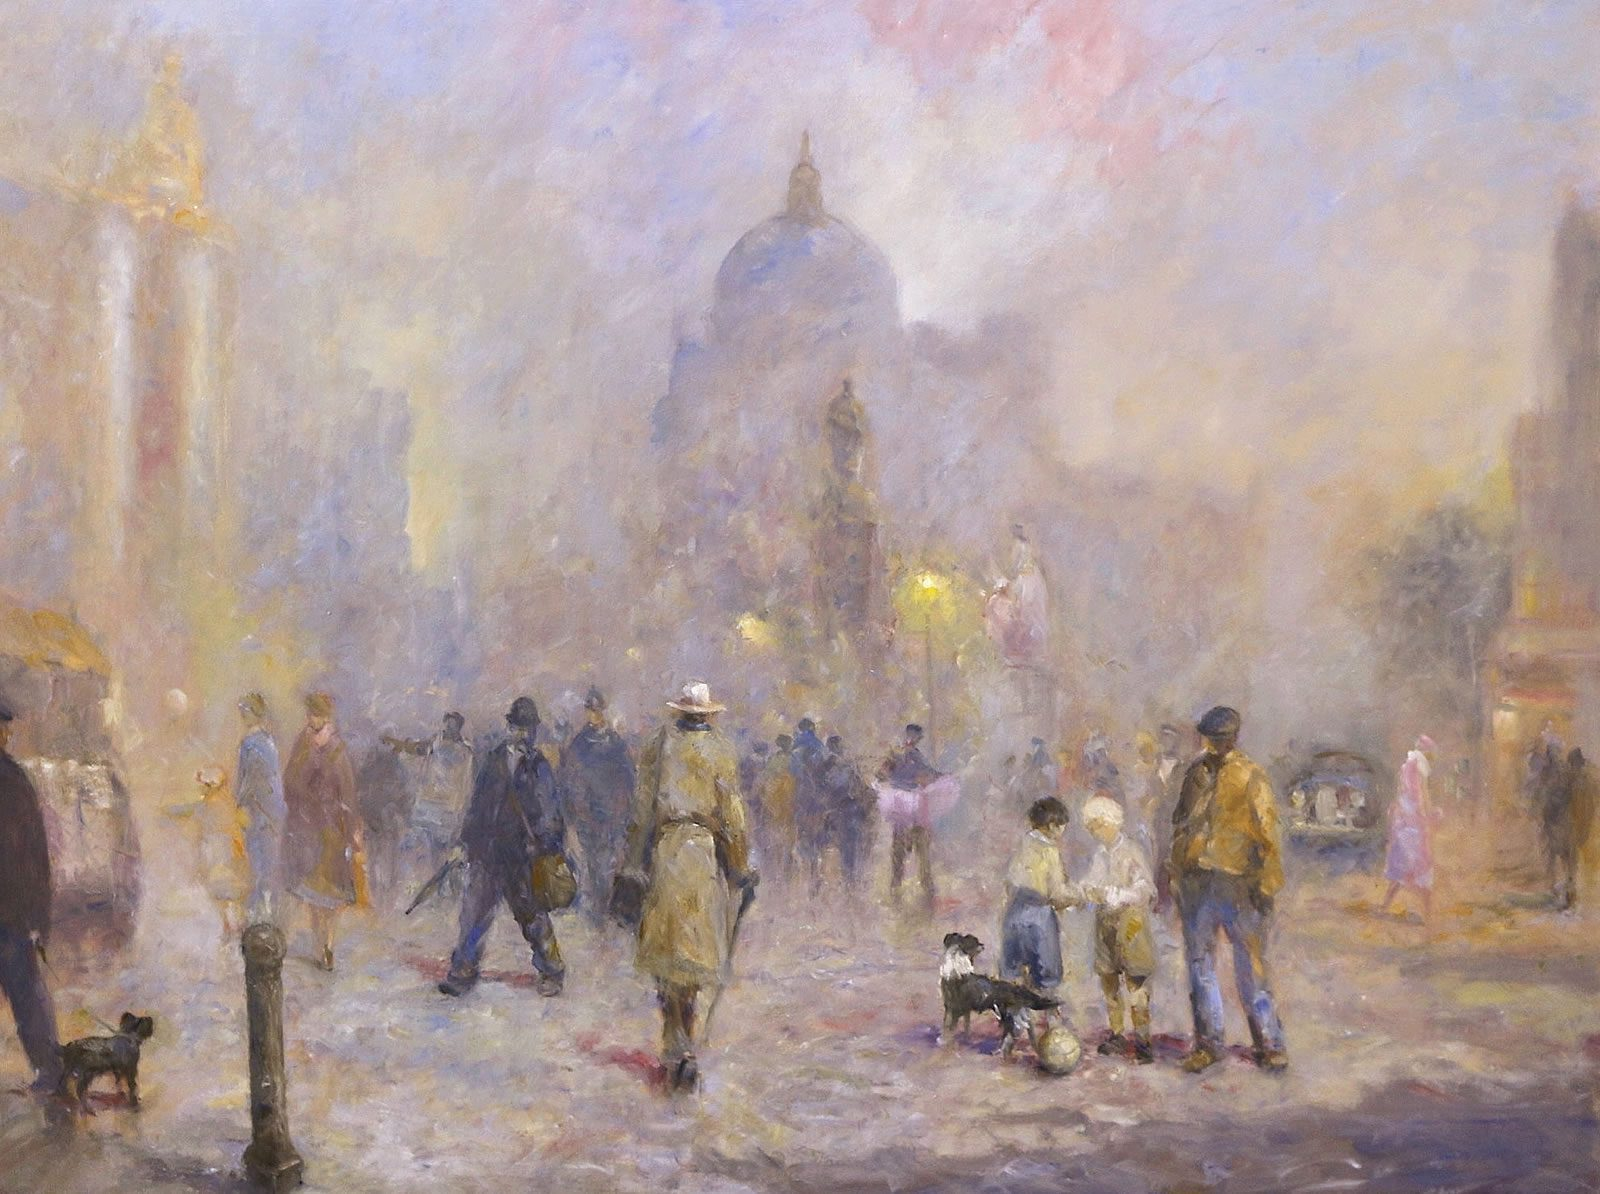 Busy London street scene in oils by Stewart Taylor